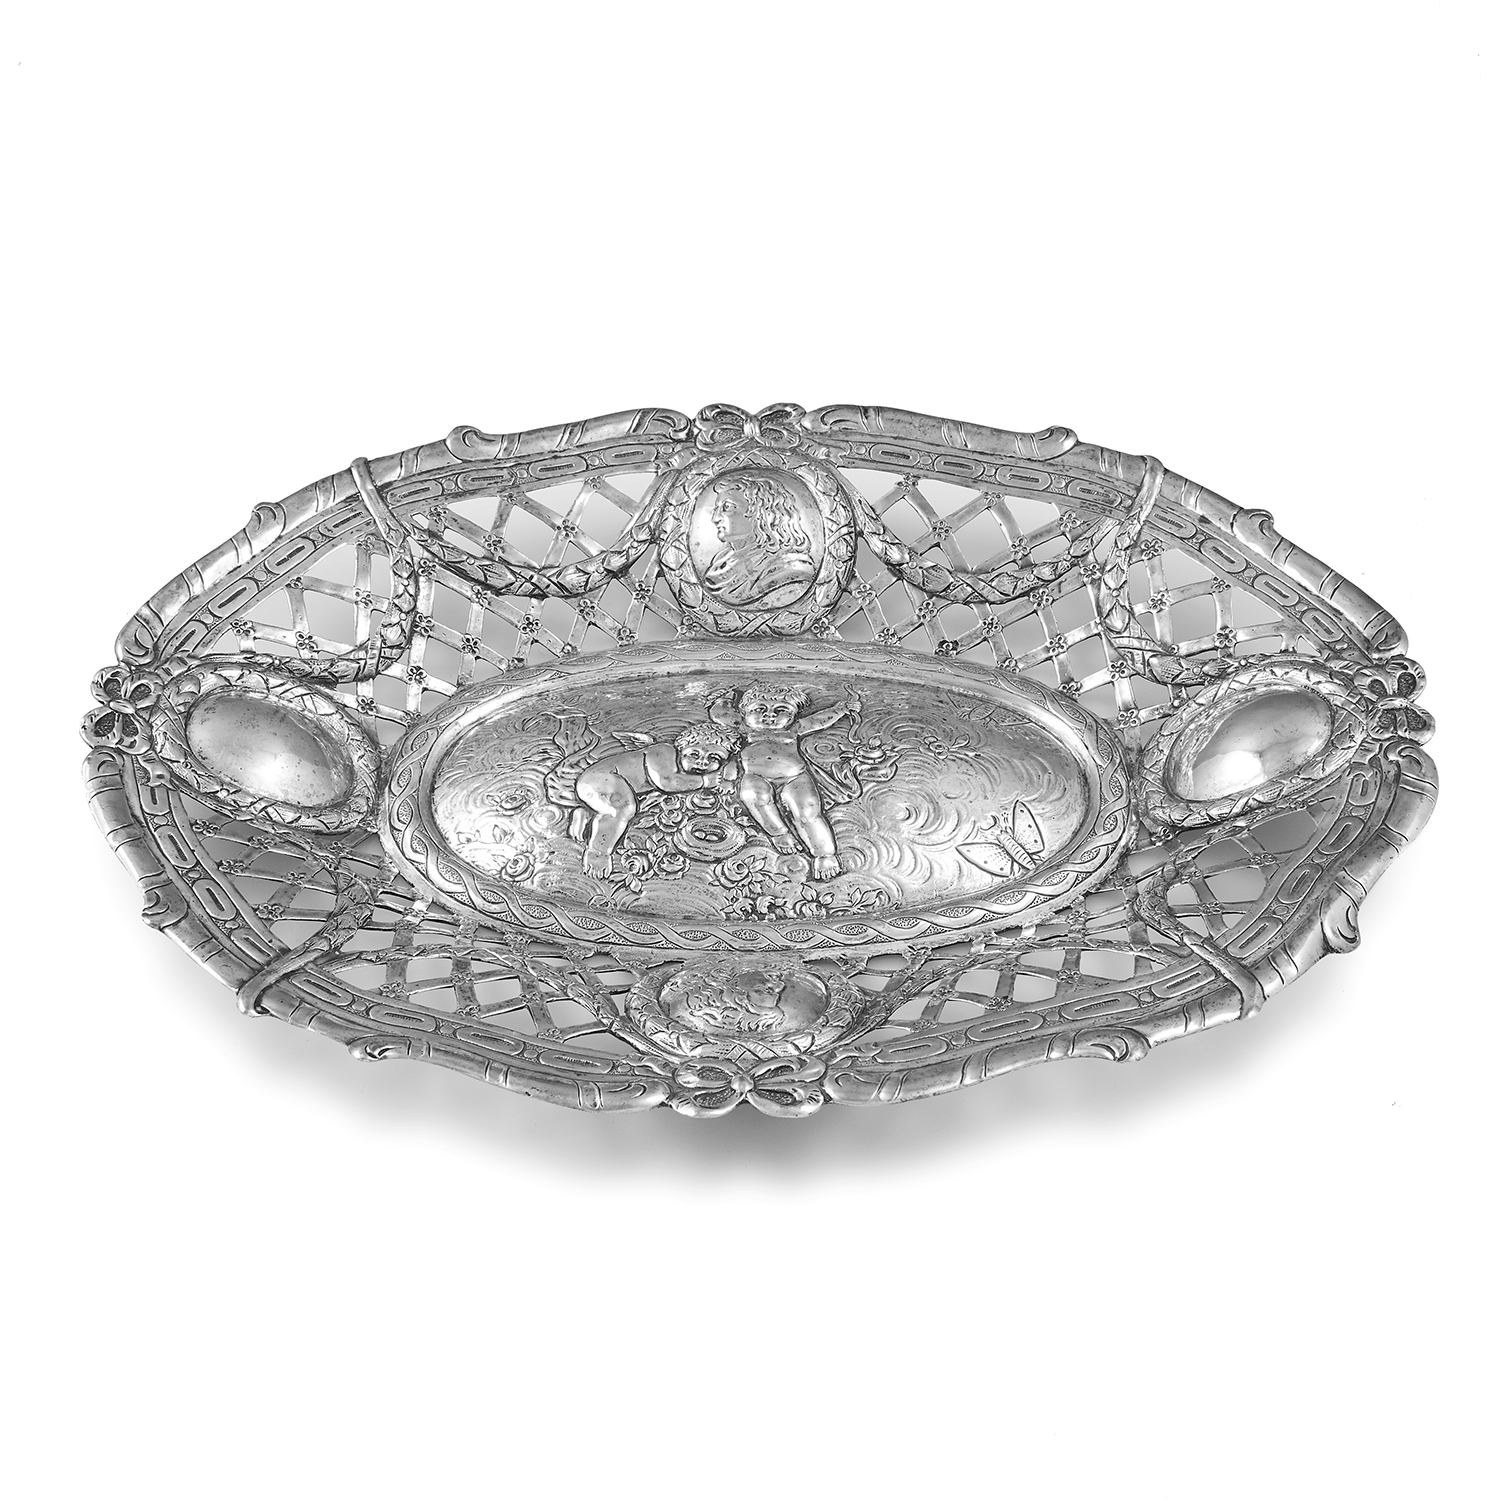 ANTIQUE GERMAN SILVER DISH of oval form with pierced and chased decoration, a scene of cherubs to